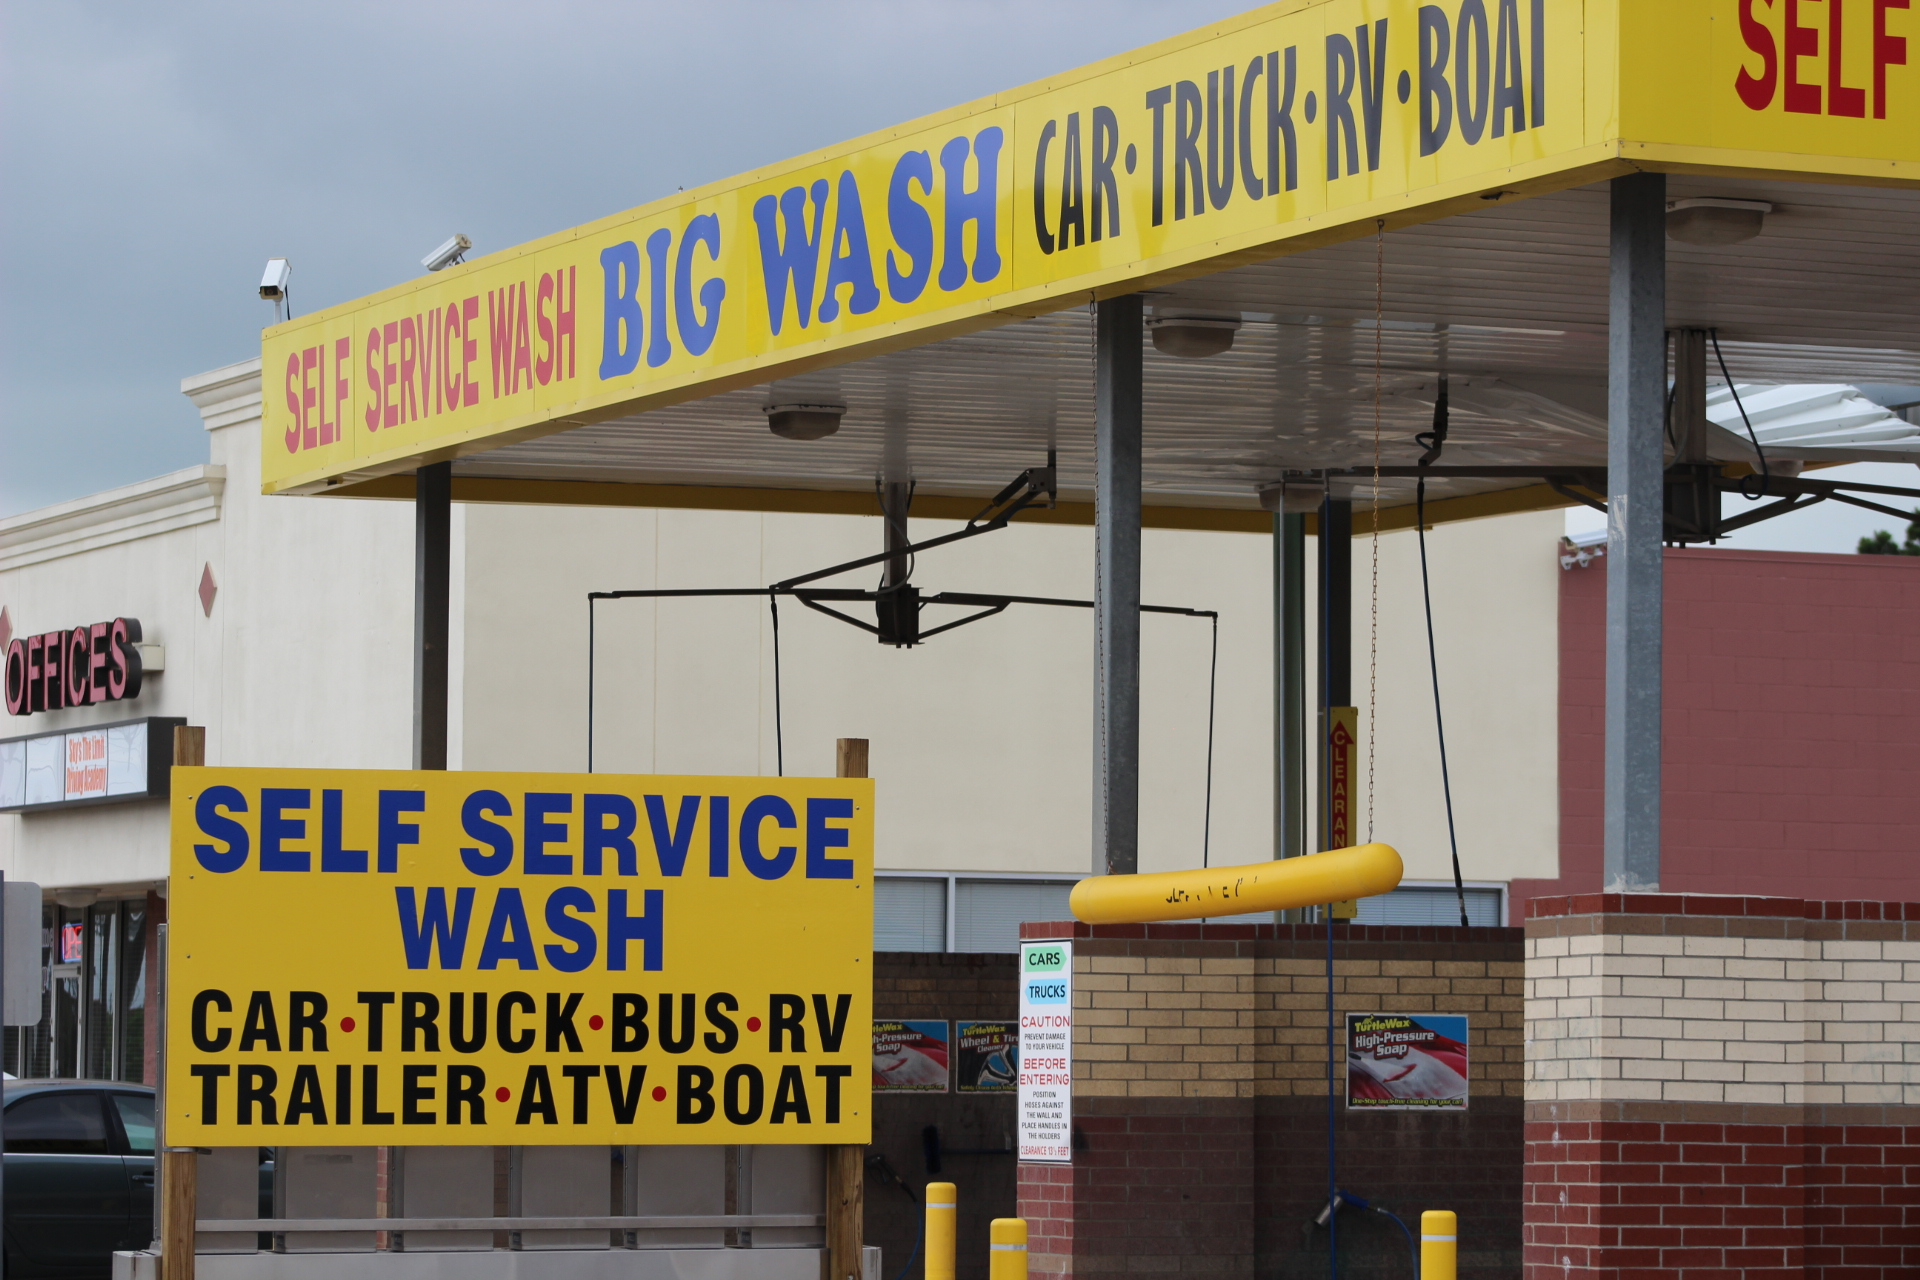 Big wash self service car truck wash countdown timers at each service location solutioingenieria Choice Image